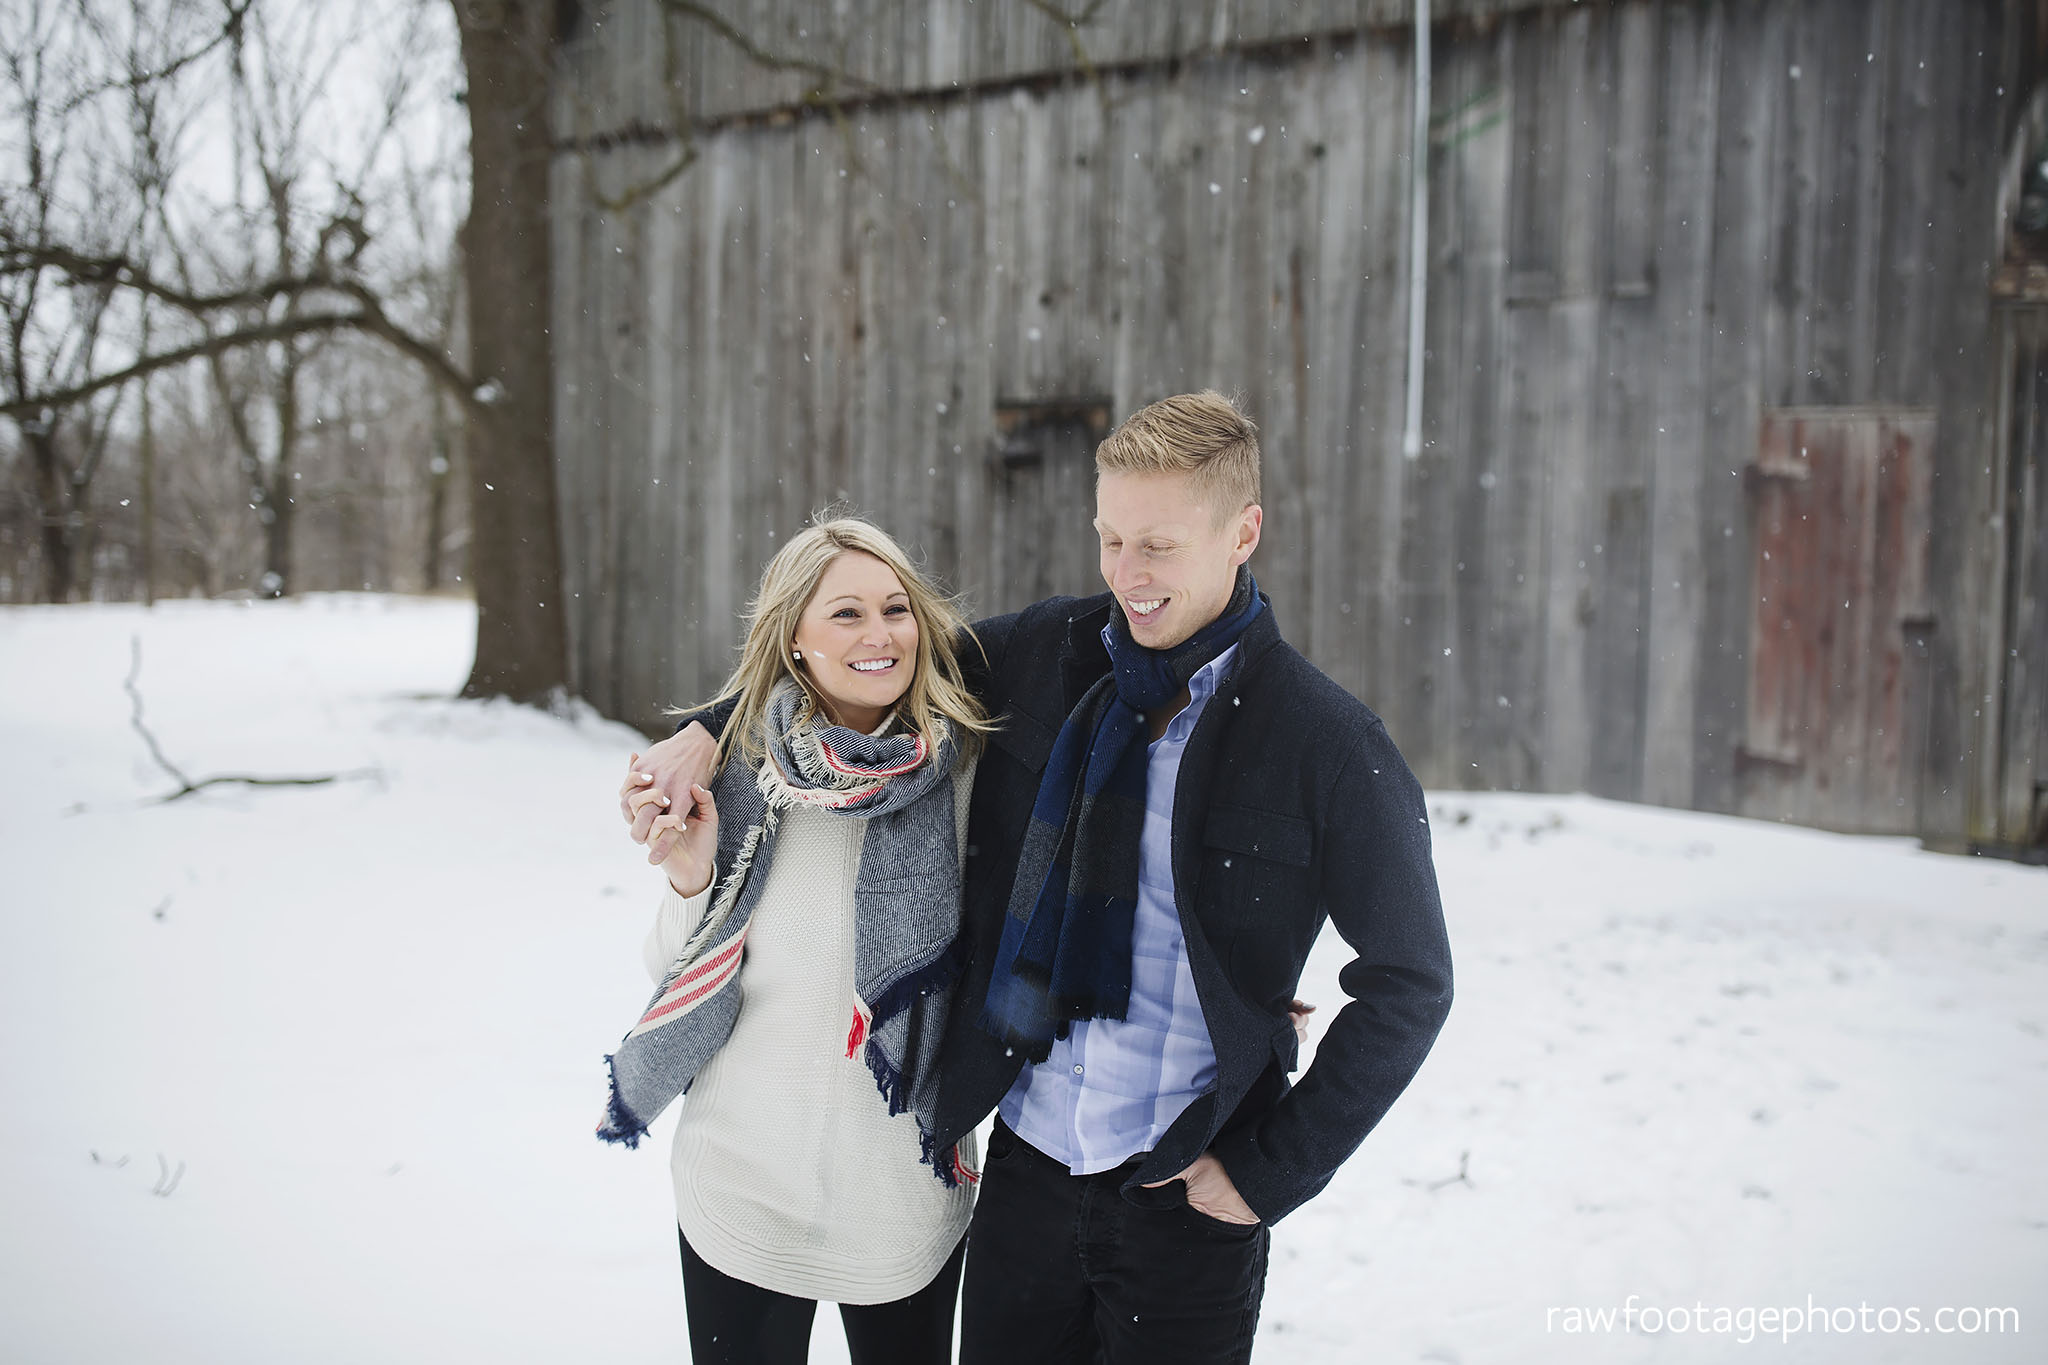 london_ontario_wedding_photographer-engagement_session-goderich_ontario-winter_e_session-barn_photos-raw_footage_photography006.jpg